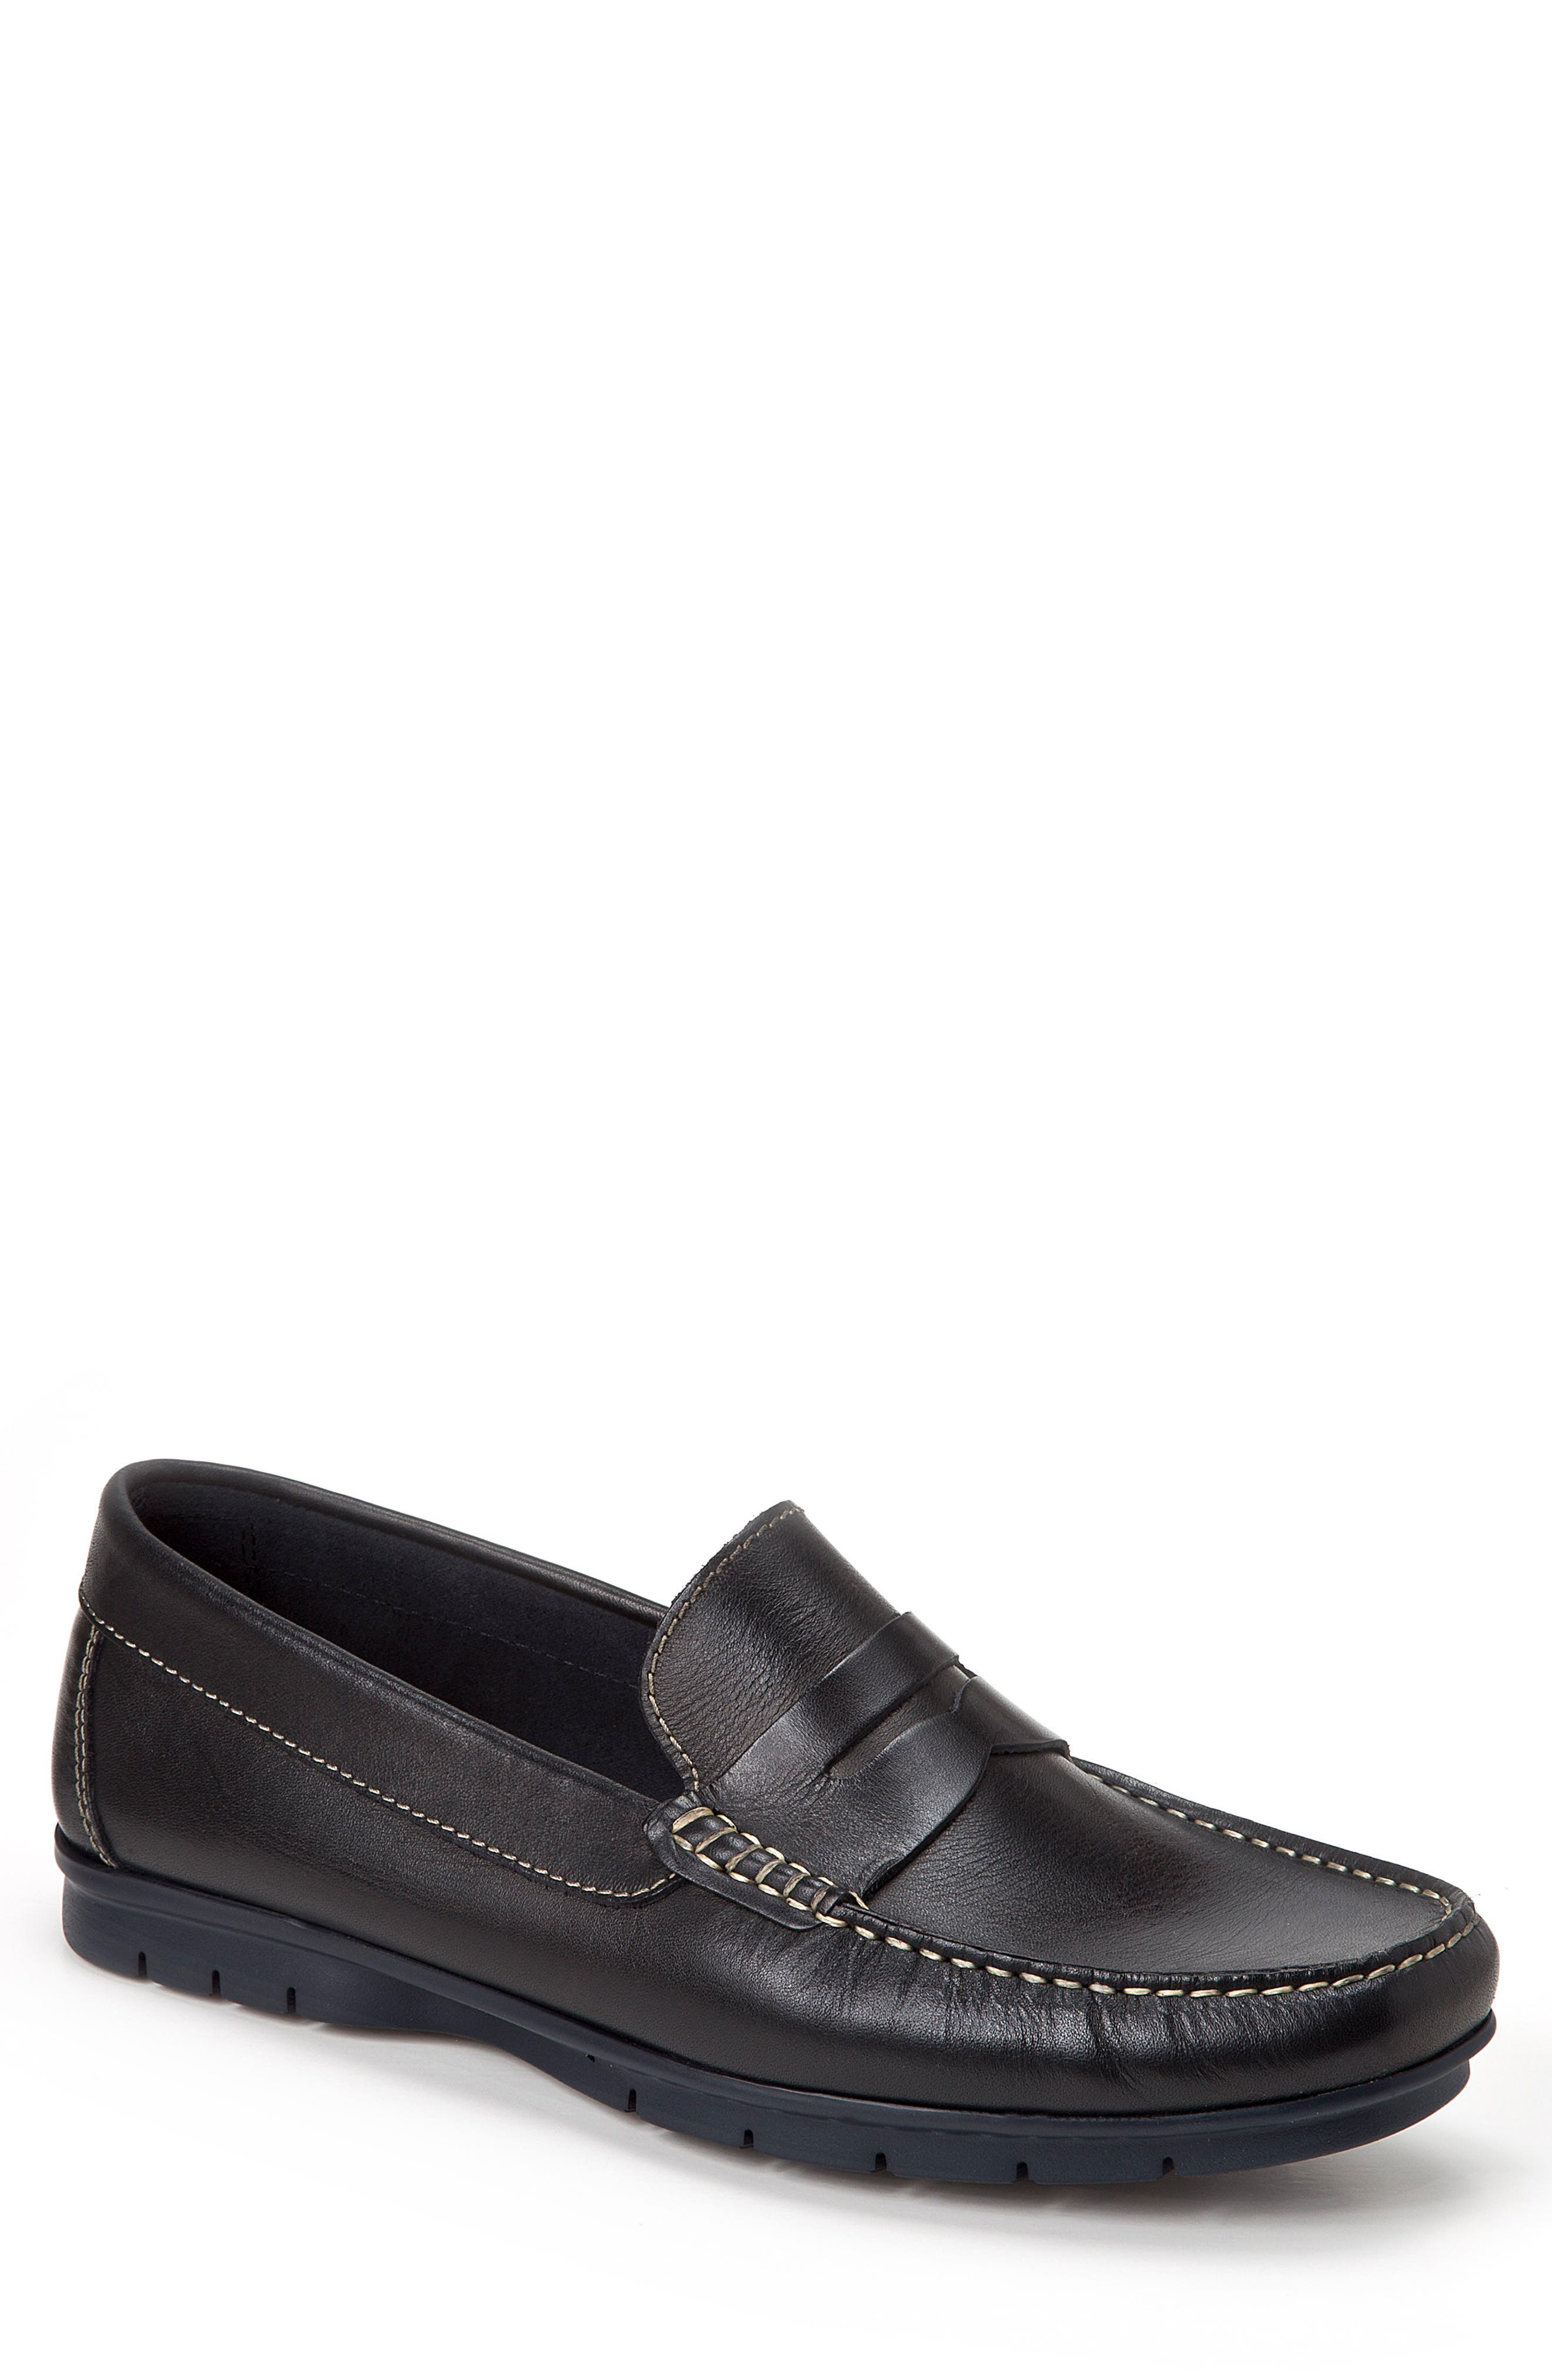 Paco Penny Loafer,                         Main,                         color, BLACK LEATHER